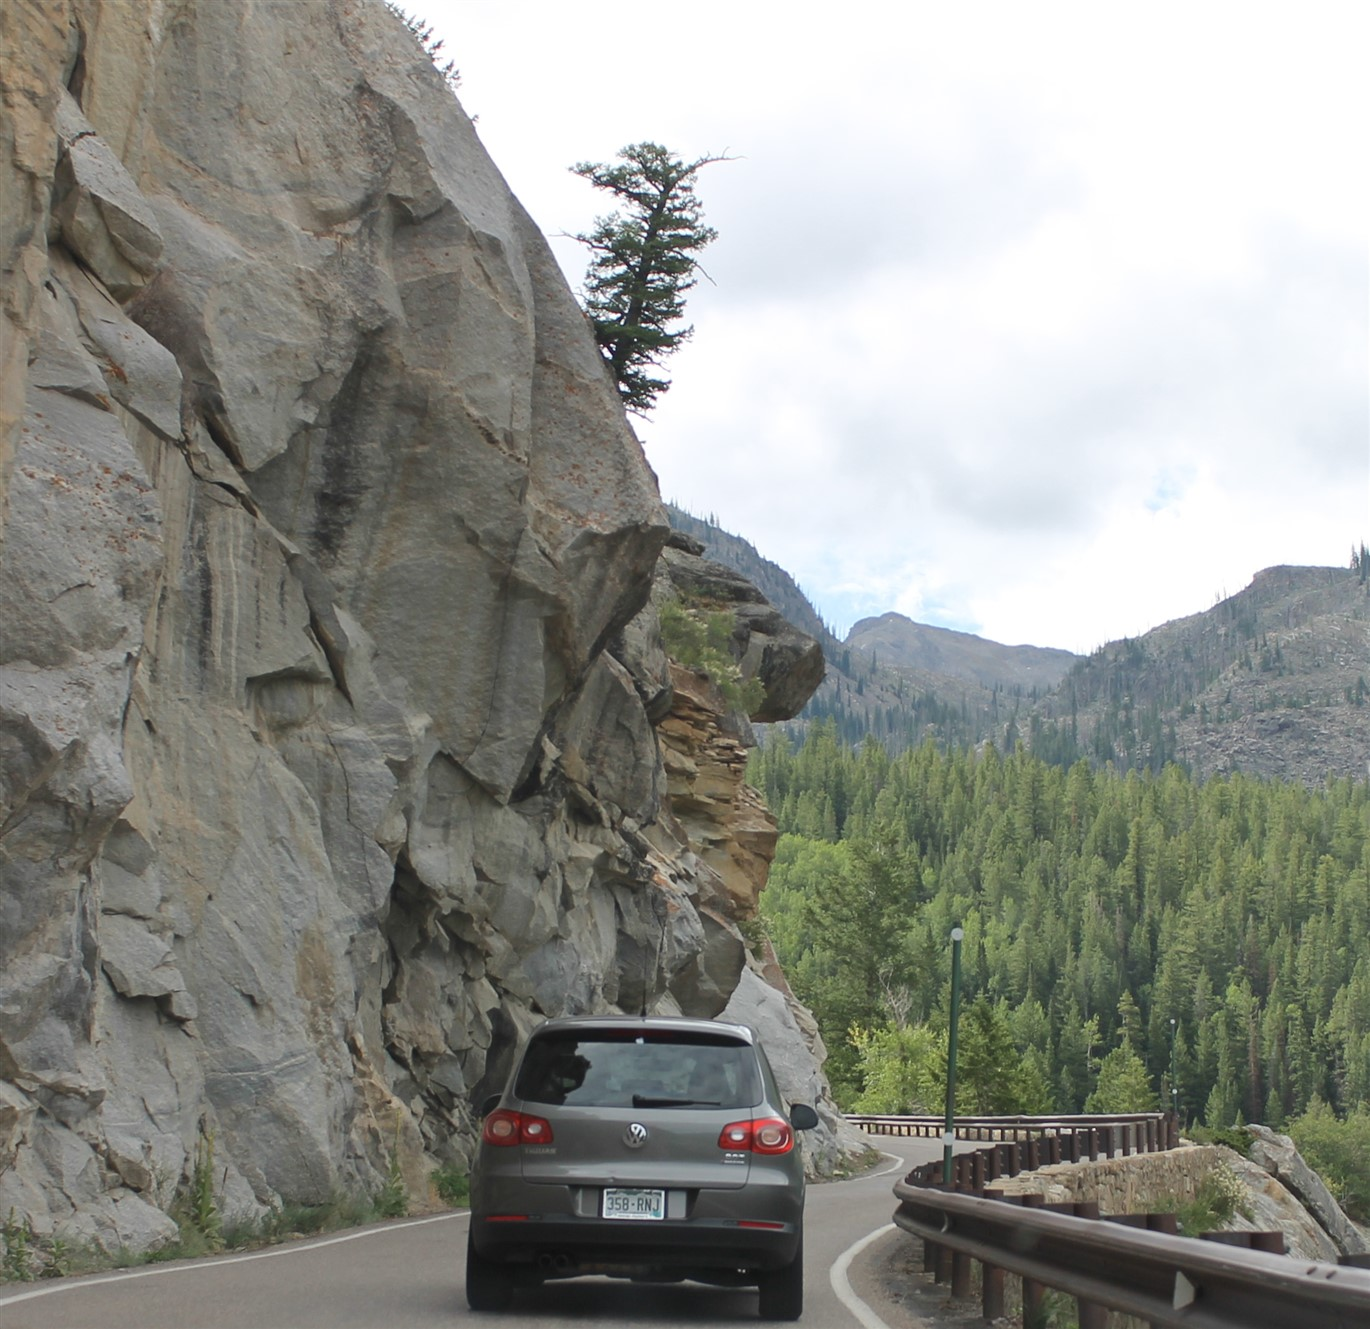 2012 07 06 19 Independence Pass Colorado.jpg